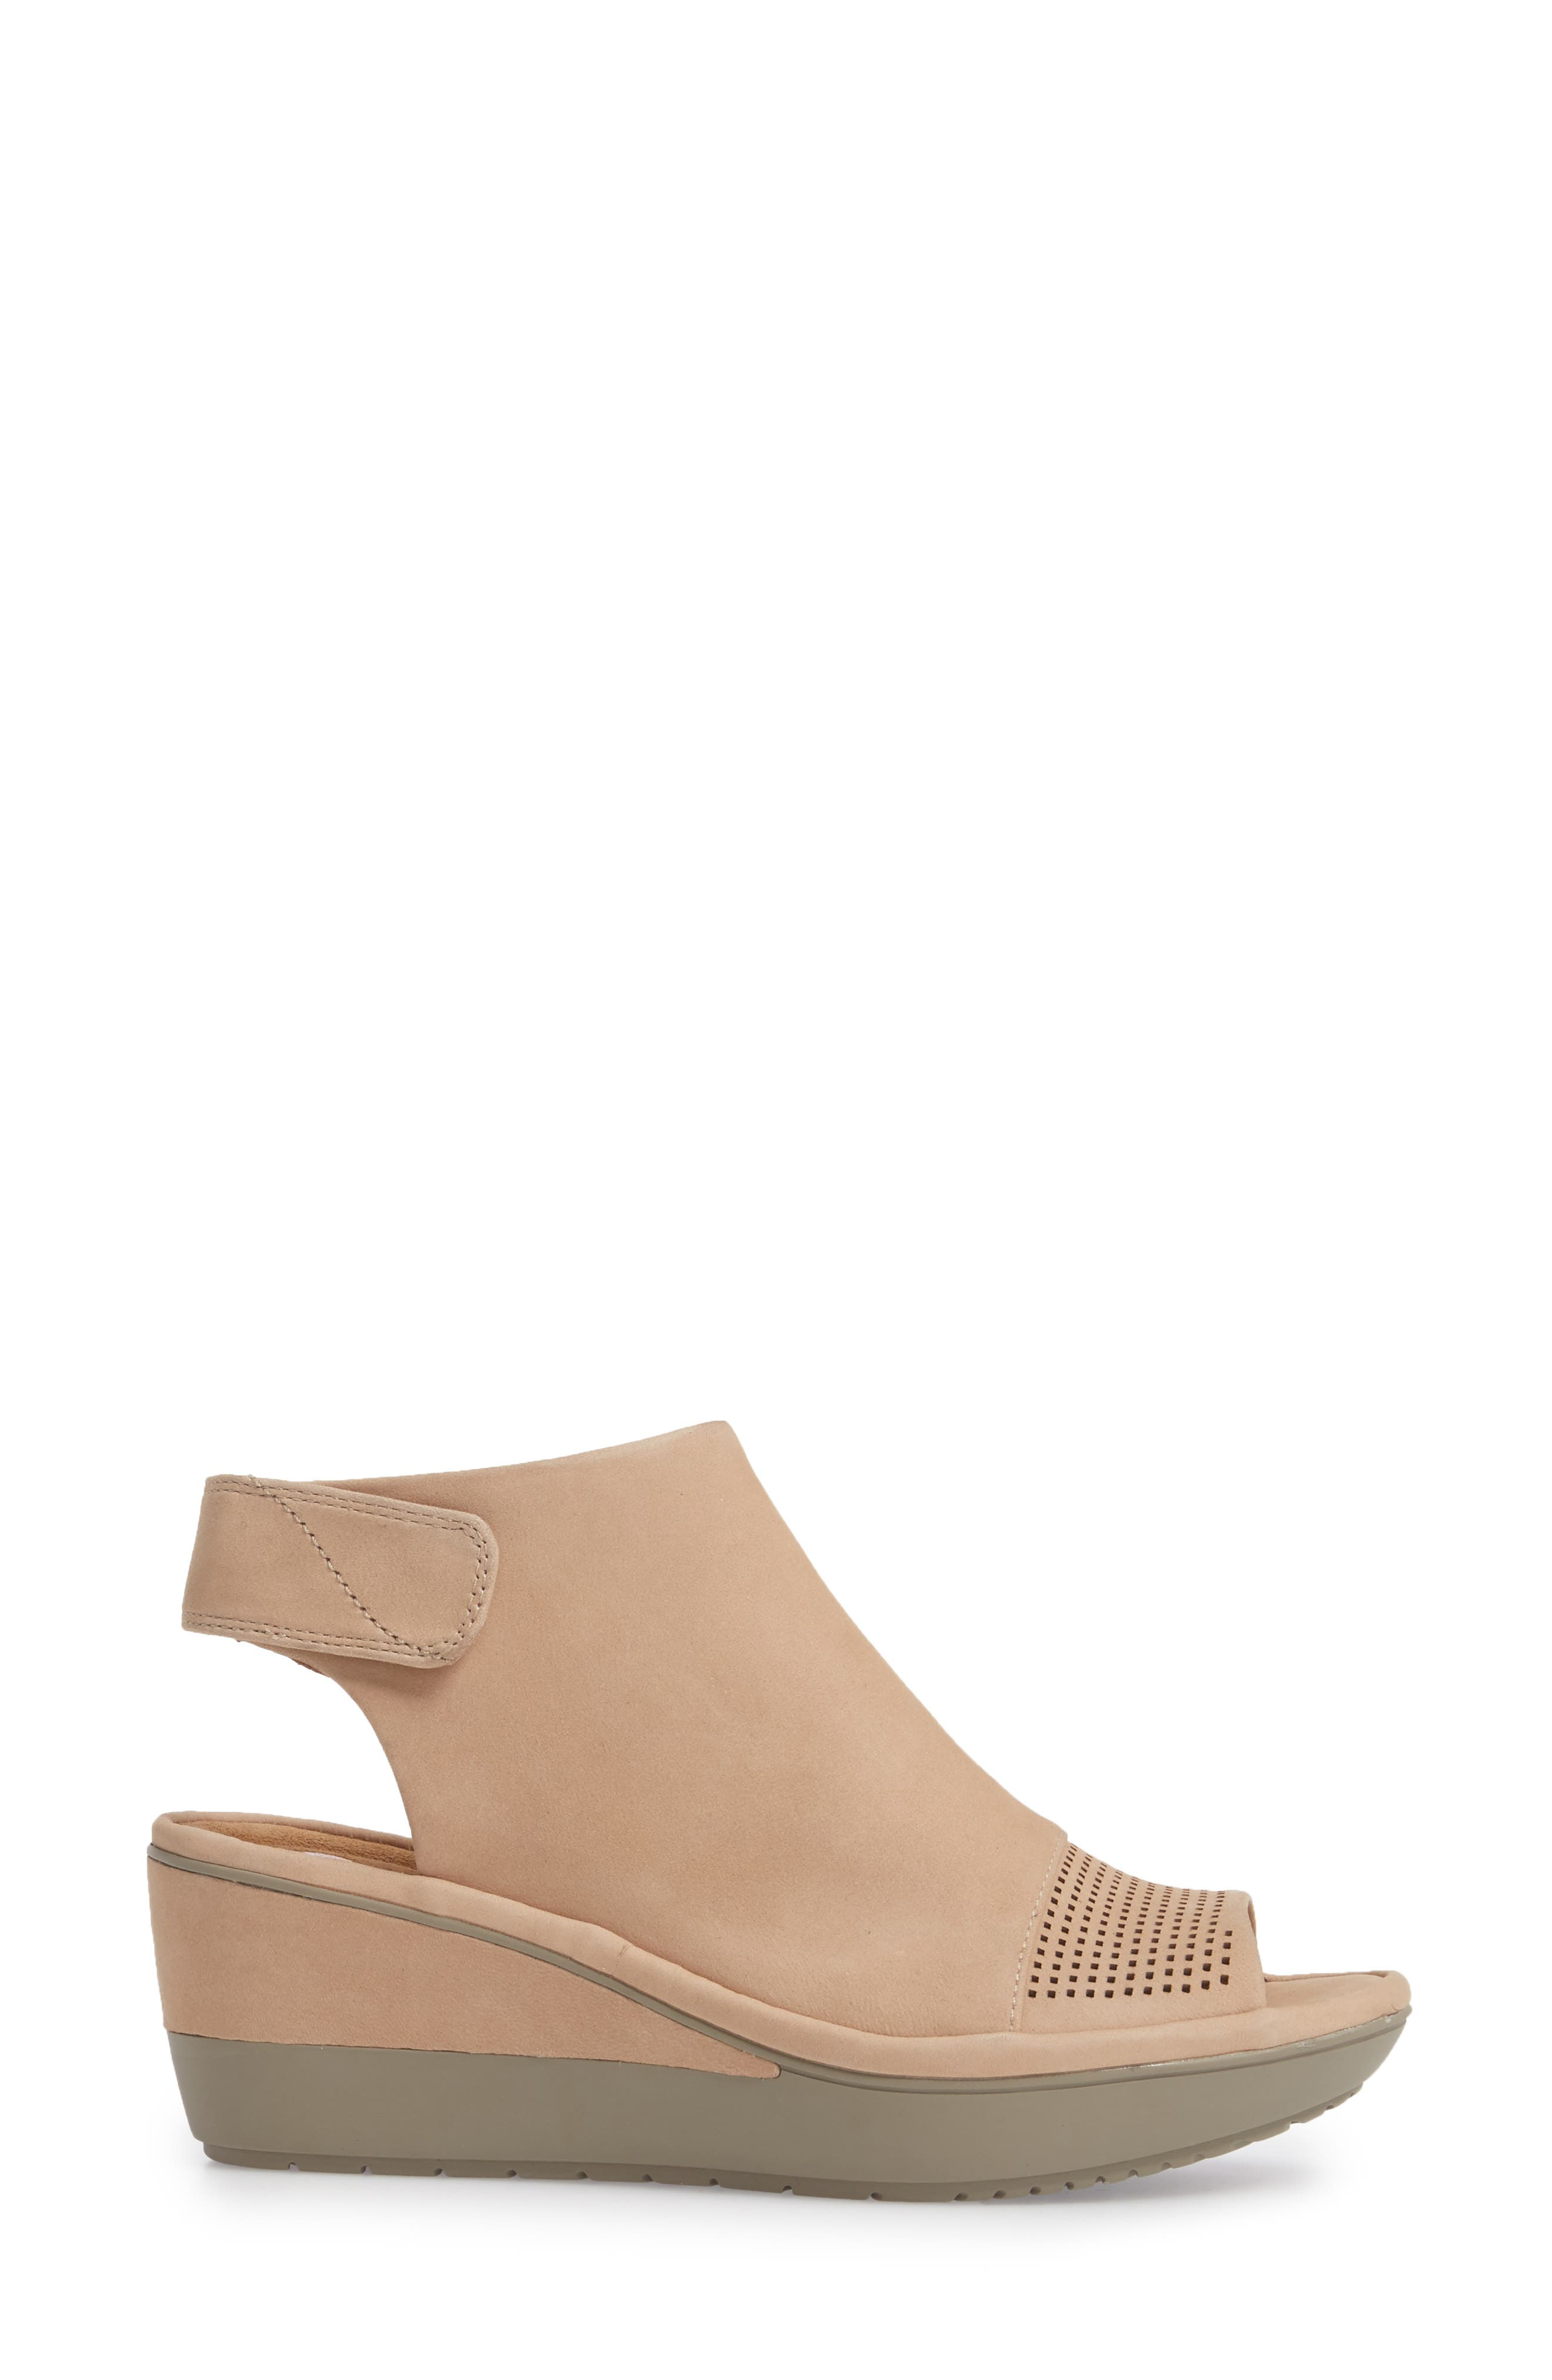 CLARKS<SUP>®</SUP>,                             Wynnmere Abie Wedge Sandal,                             Alternate thumbnail 3, color,                             273